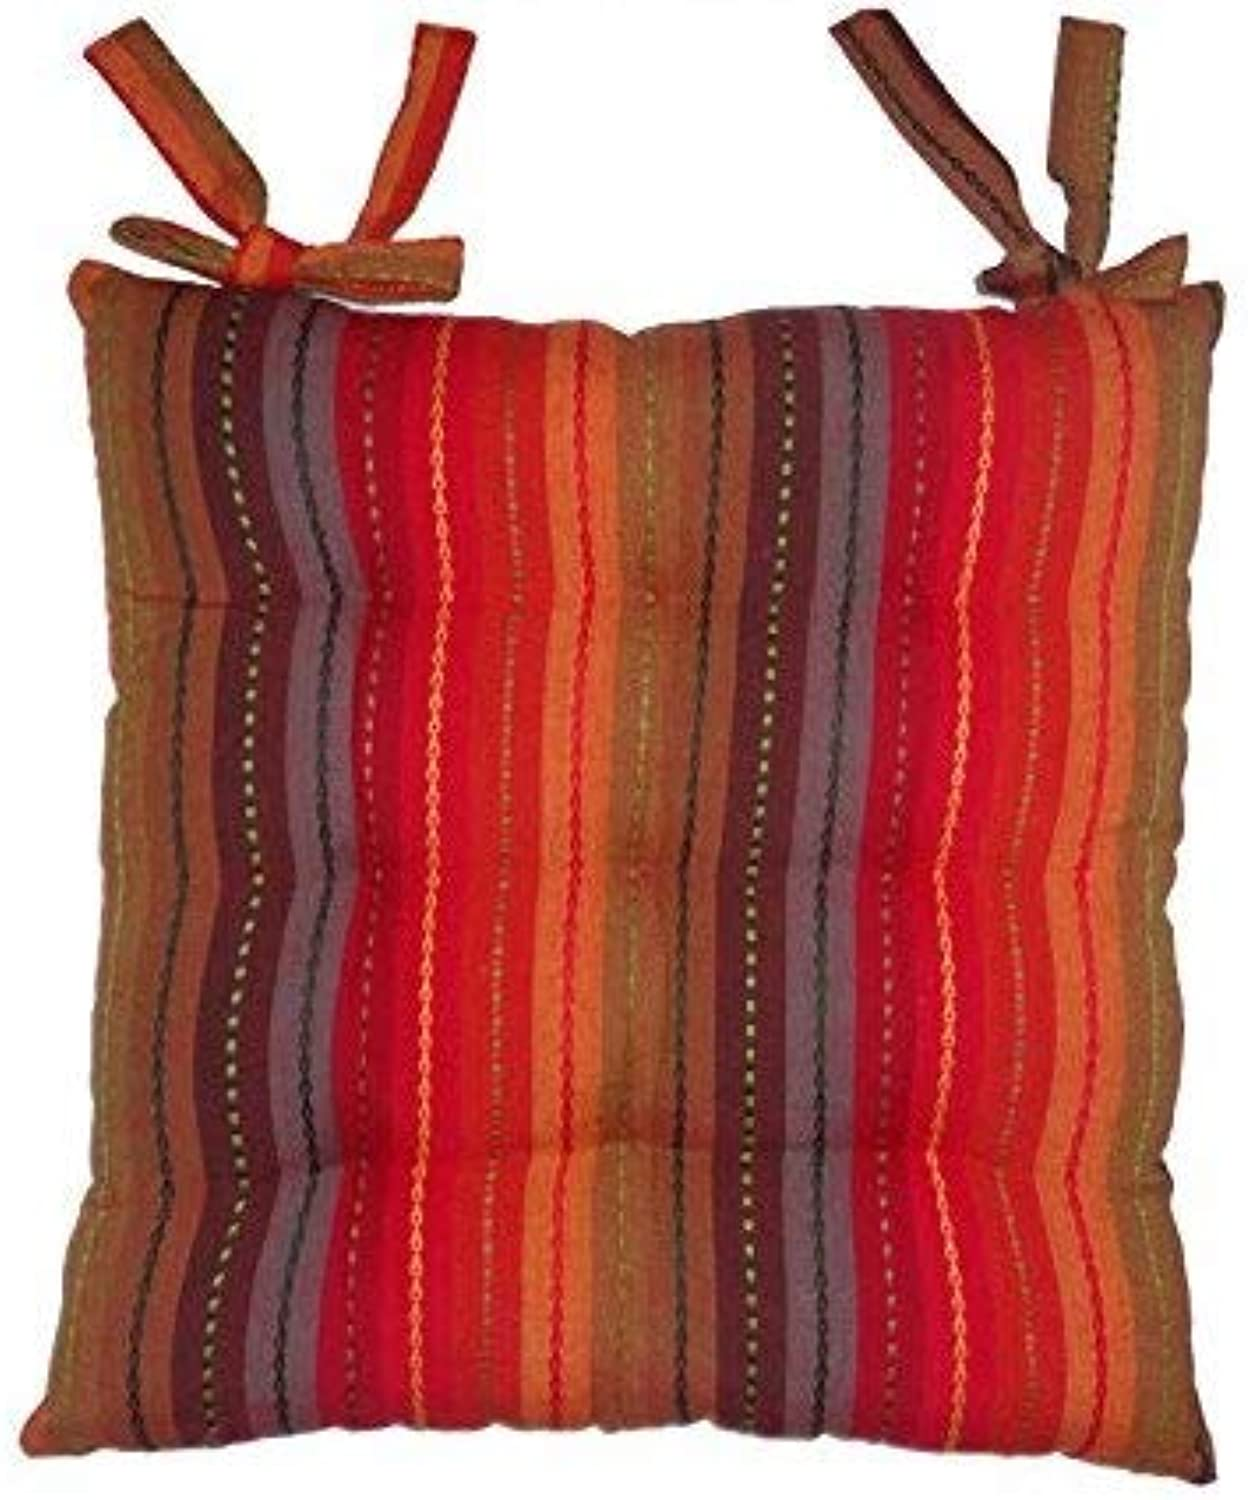 Cotton Craft - Set of 4-17x17 Inches - Red- Multi Salsa Stripe Dining Chair Pad Cushion with Ties